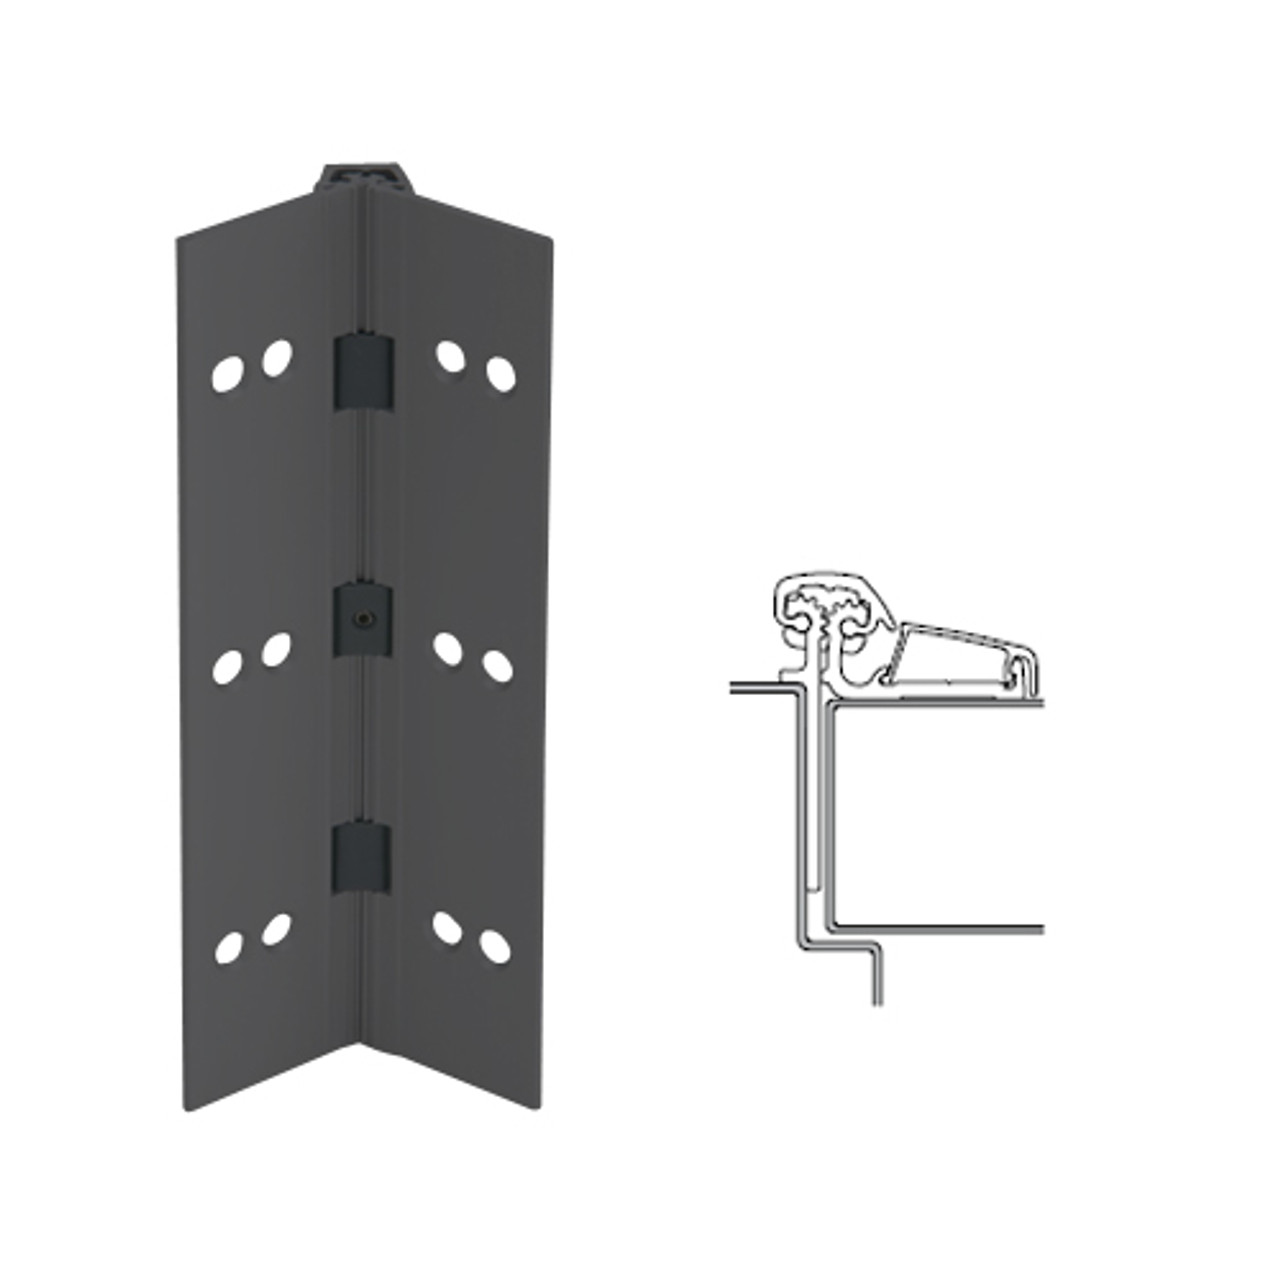 053XY-315AN-85-SECWDHM IVES Adjustable Half Surface Continuous Geared Hinges with Security Screws - Hex Pin Drive in Anodized Black